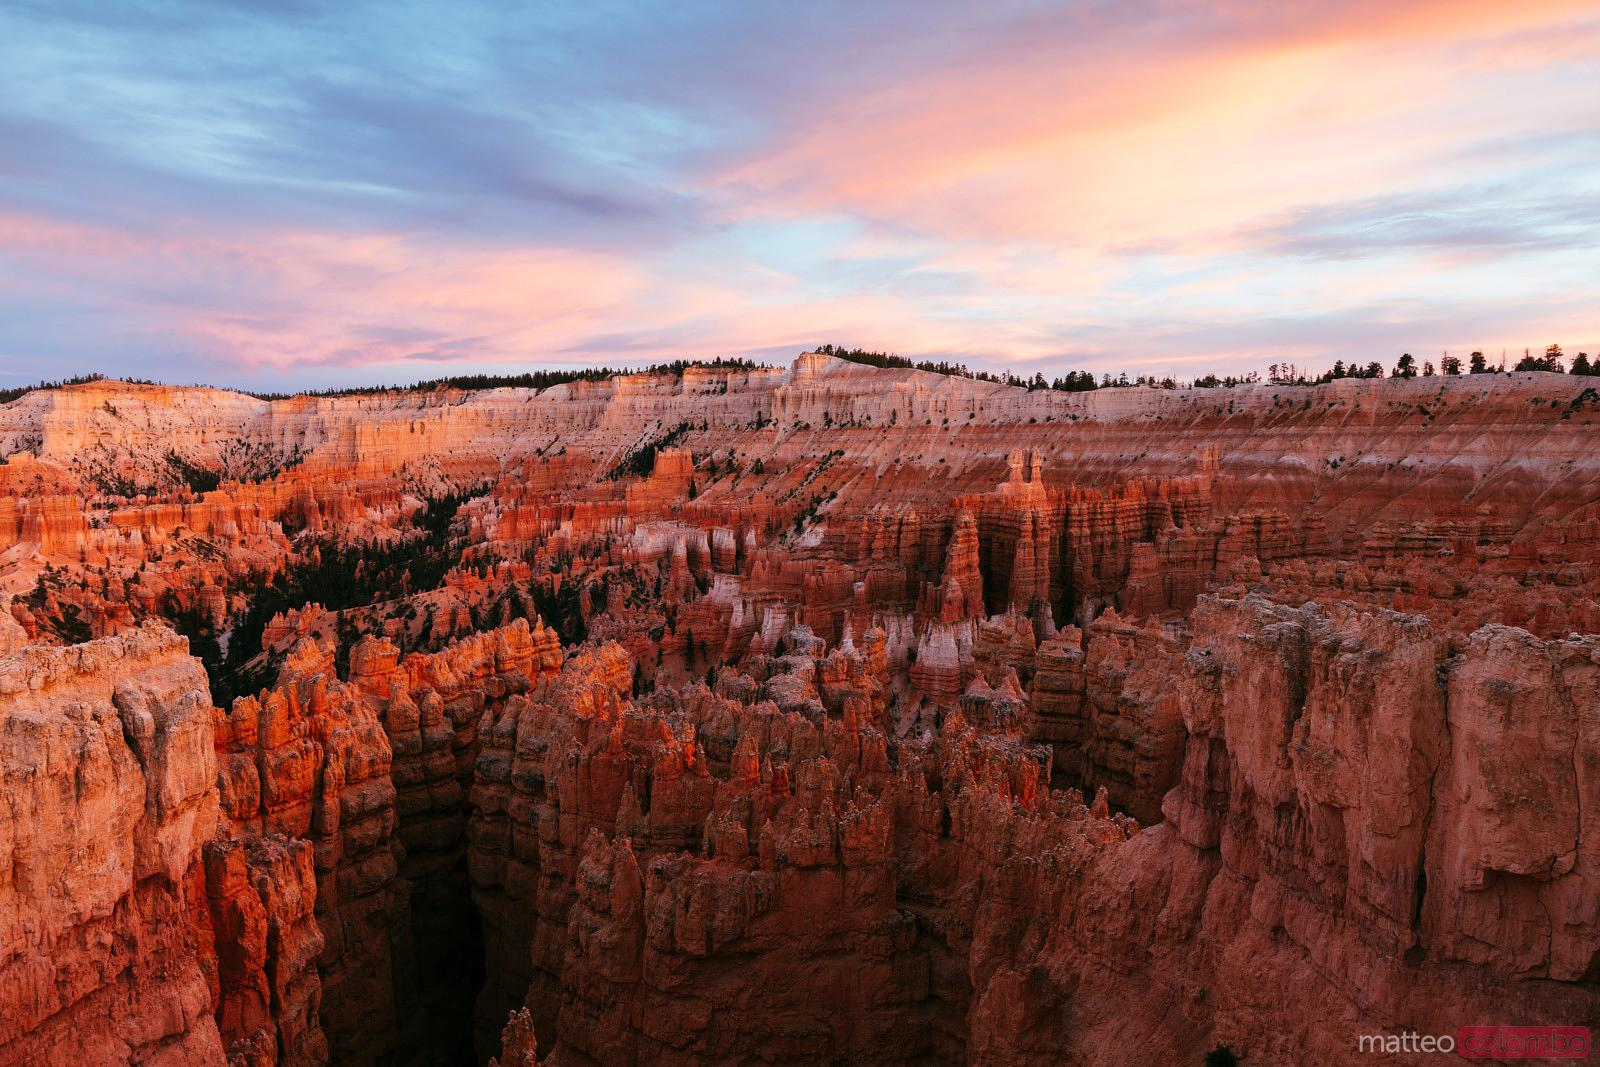 Awesome sunset at Bryce Canyon, Utah, USA